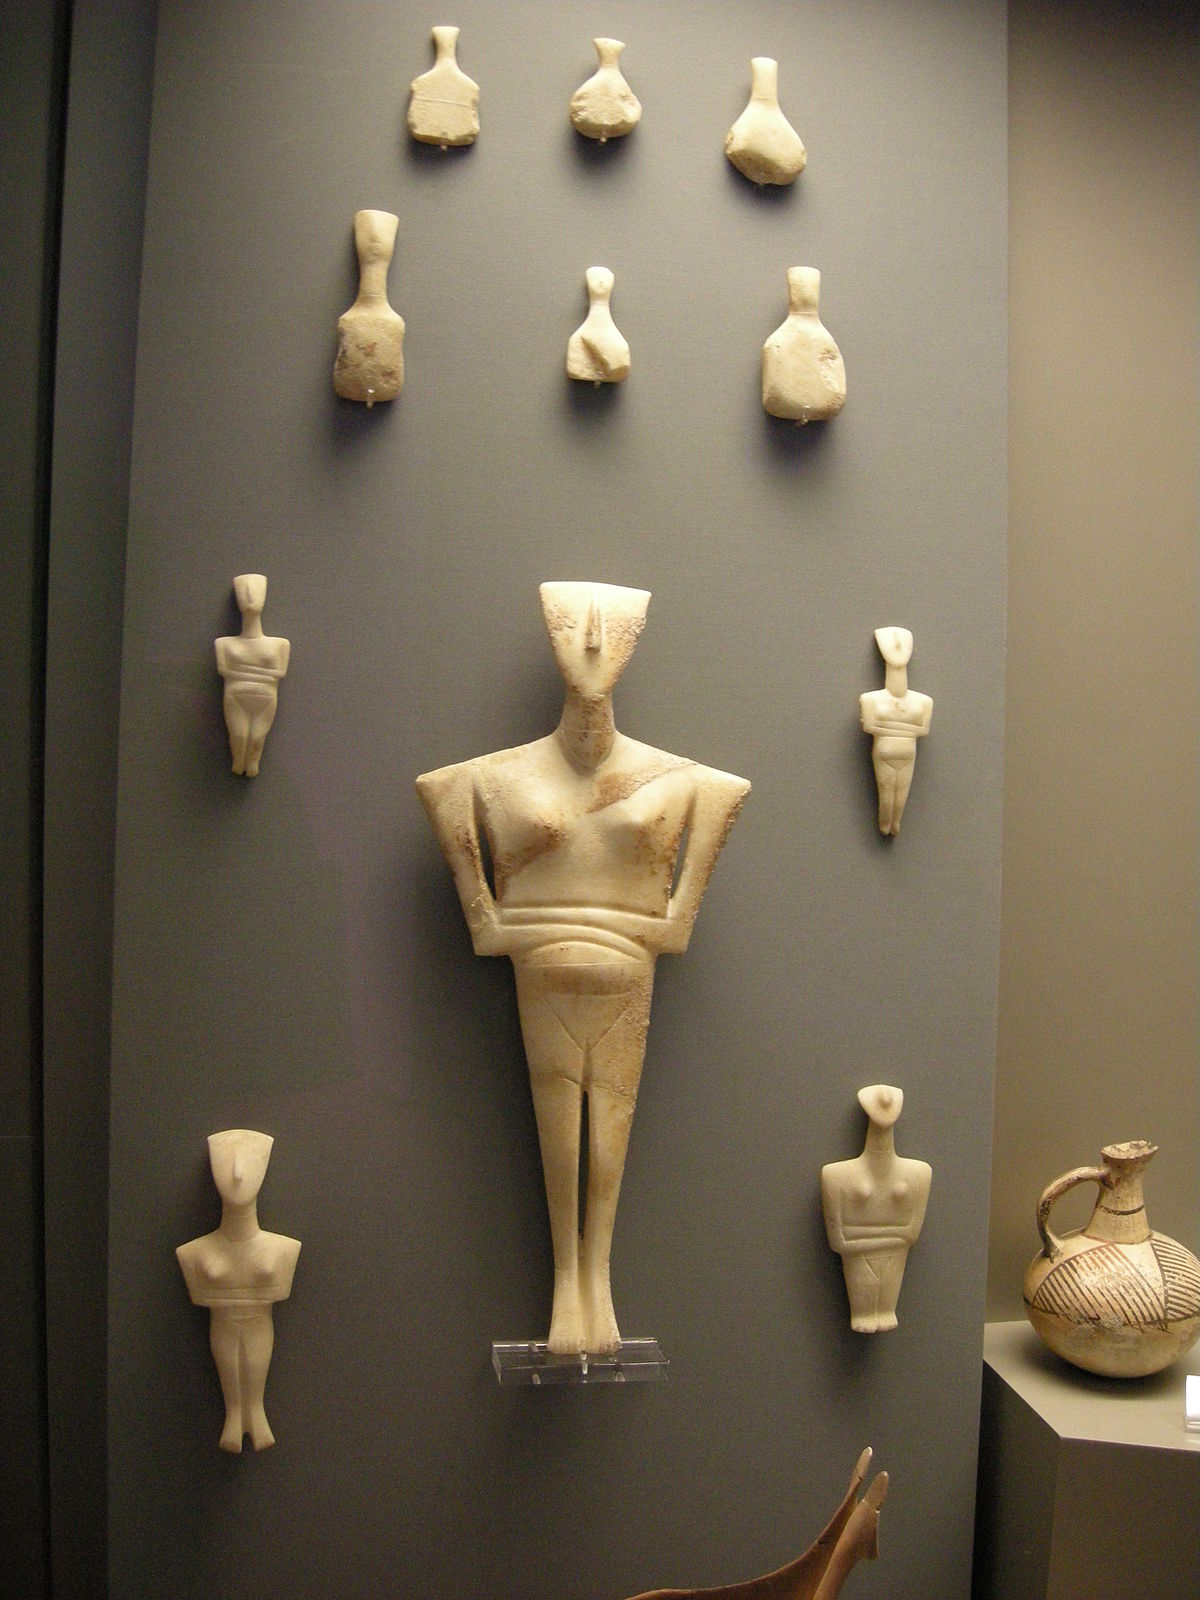 Cycladic art - Wikipedia